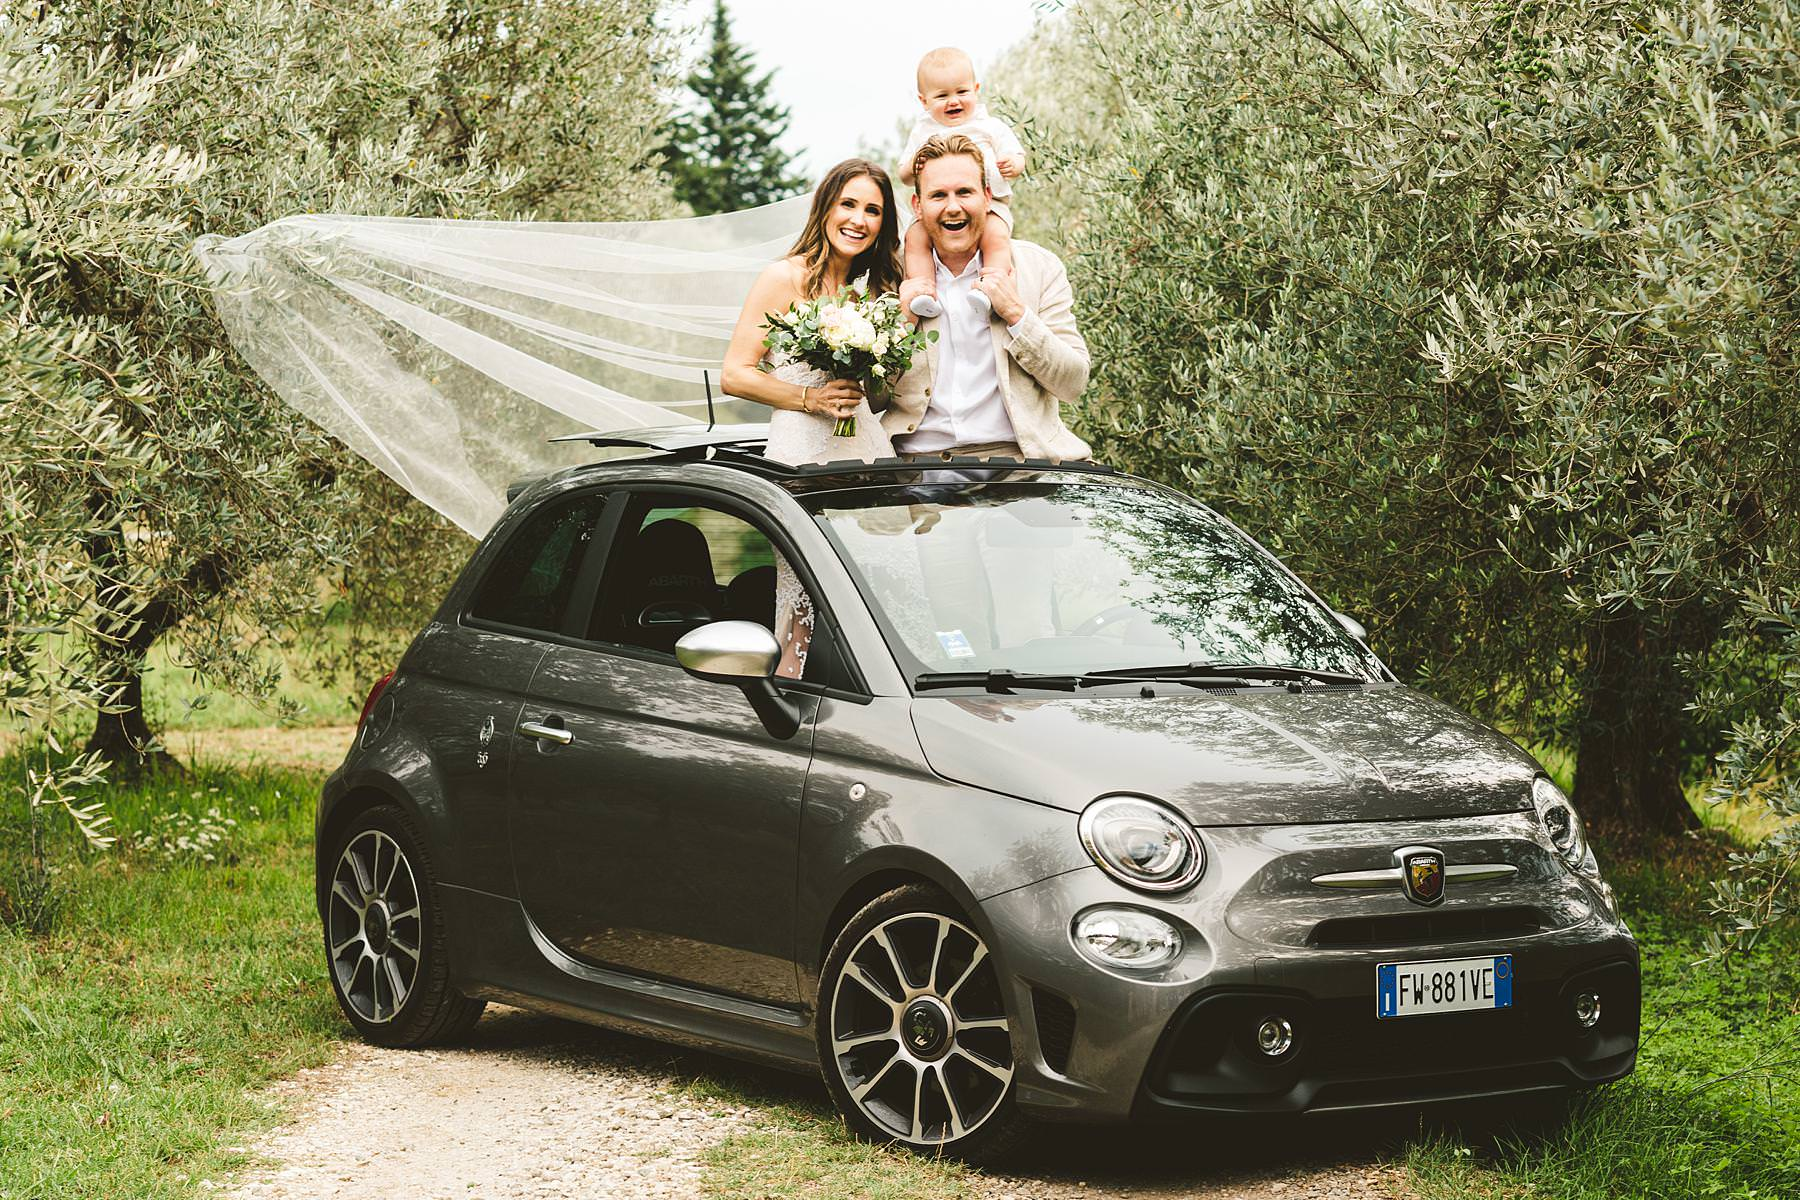 Bride and groom portrait with Fiat500 Abarth in the olive groves of Chianti near the historic residence of Villa Il Poggiale